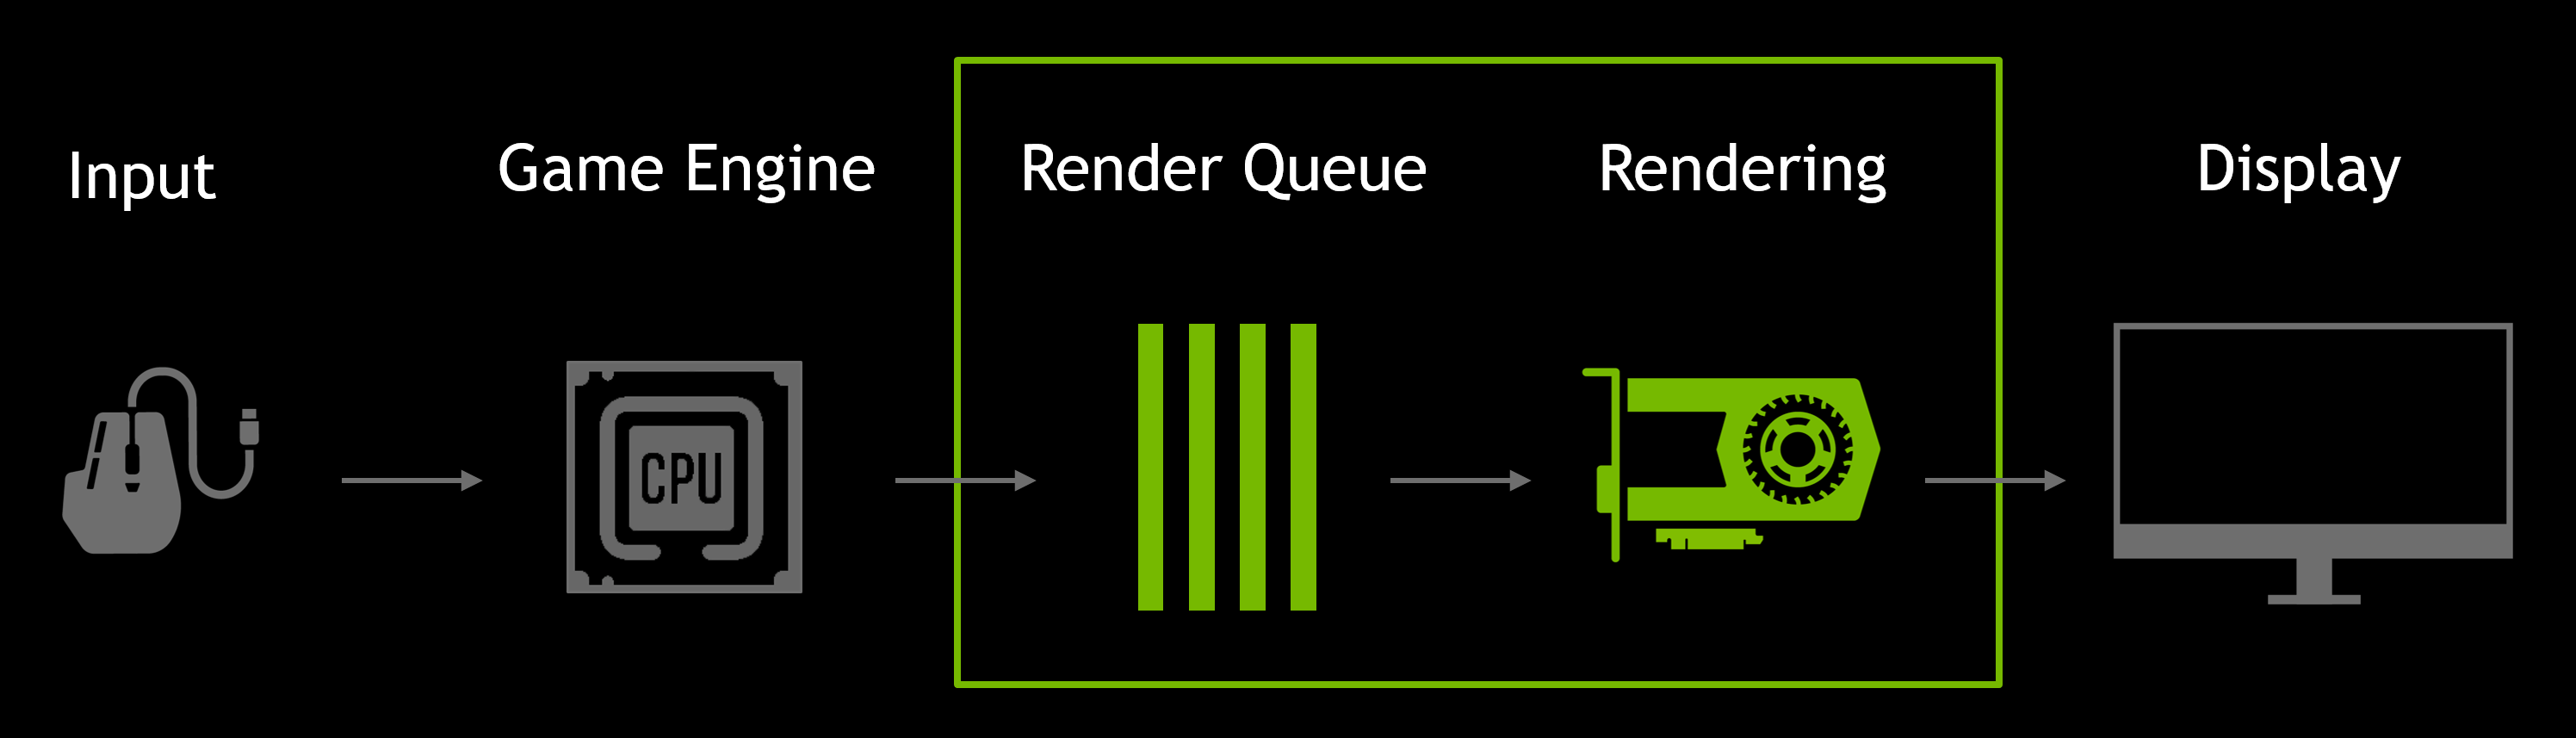 gamescom 2019 geforce game ready driver latency render queue